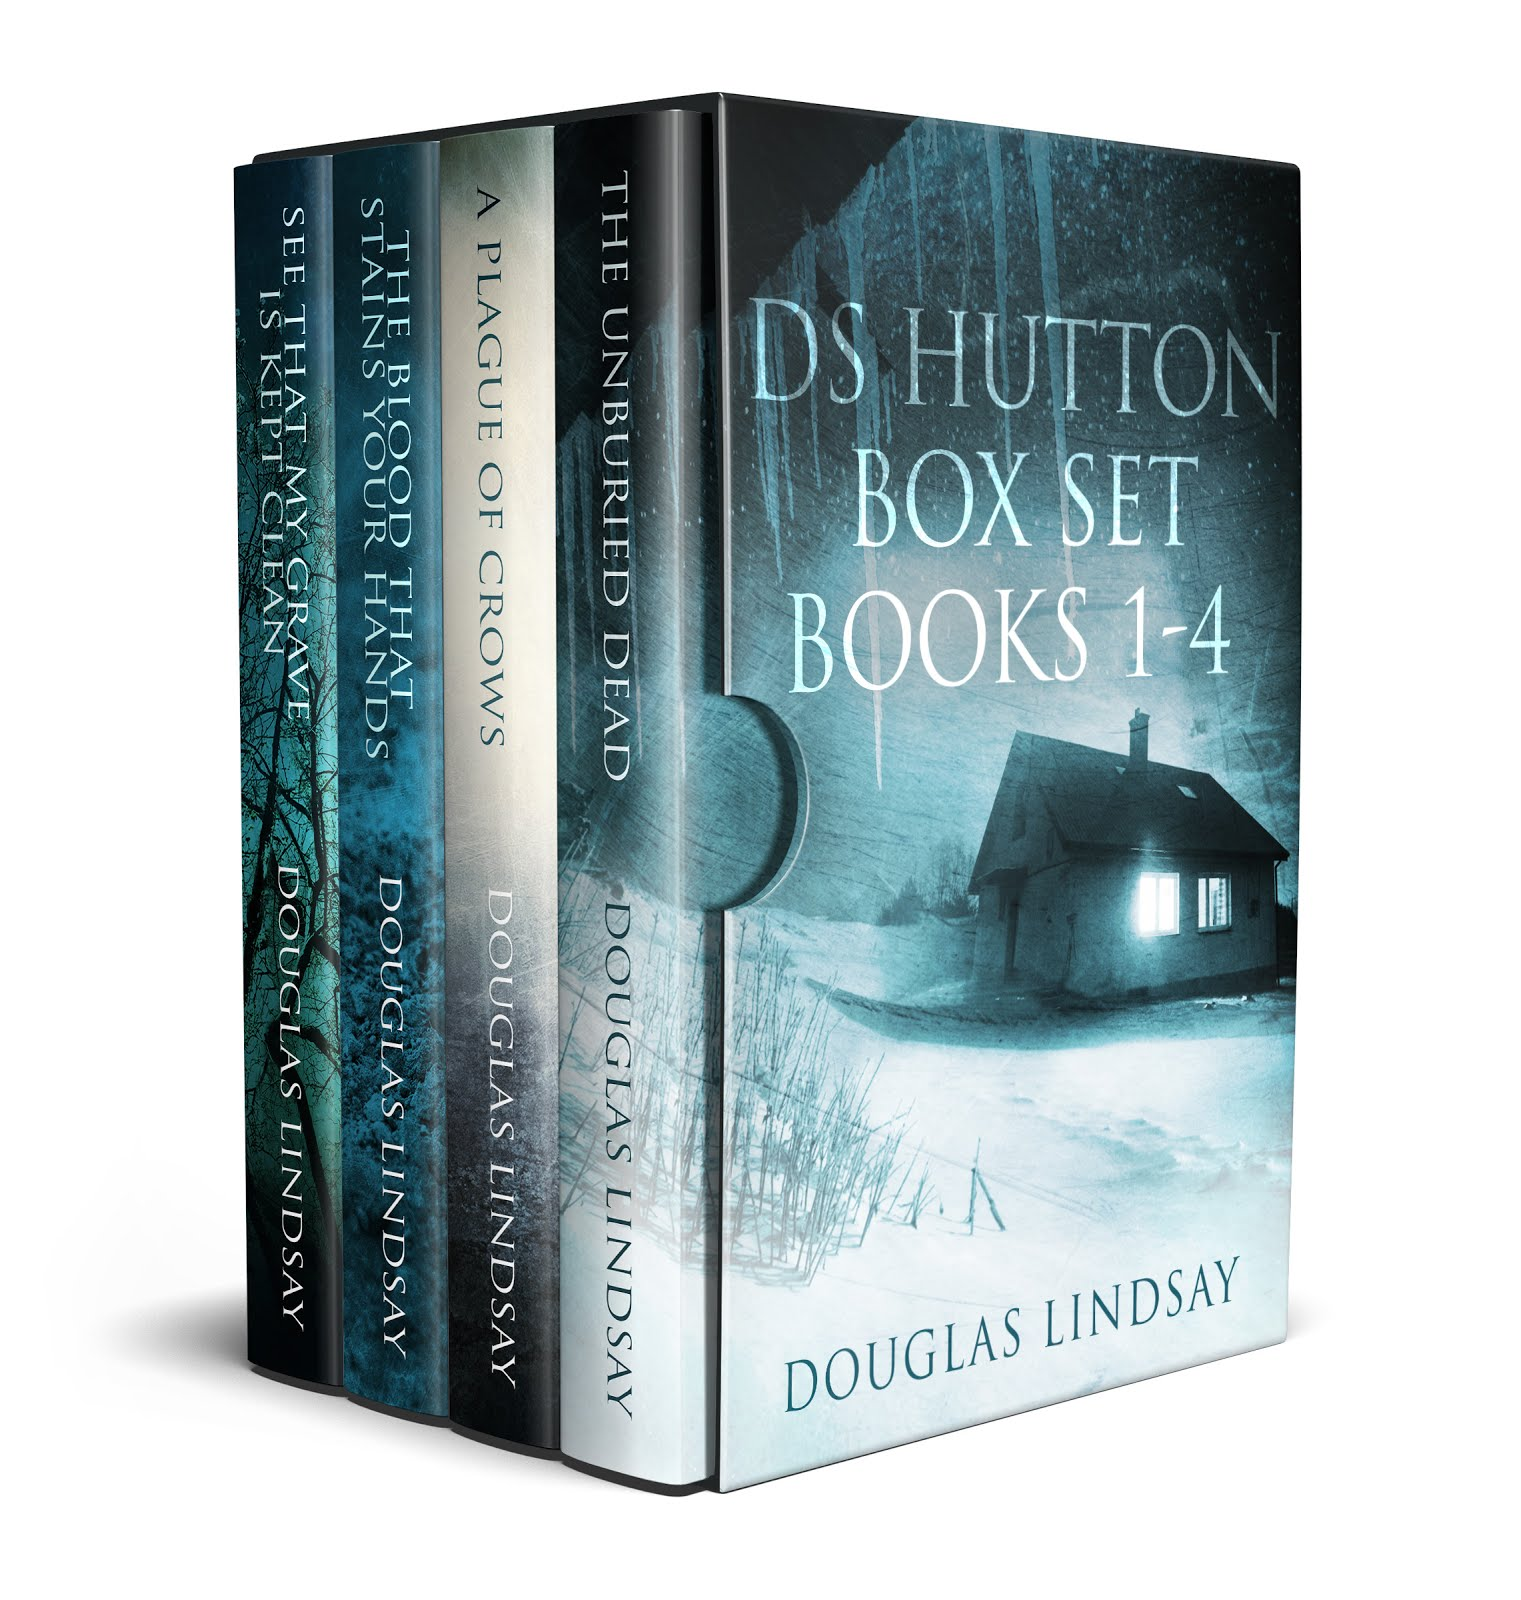 The DS Hutton Series